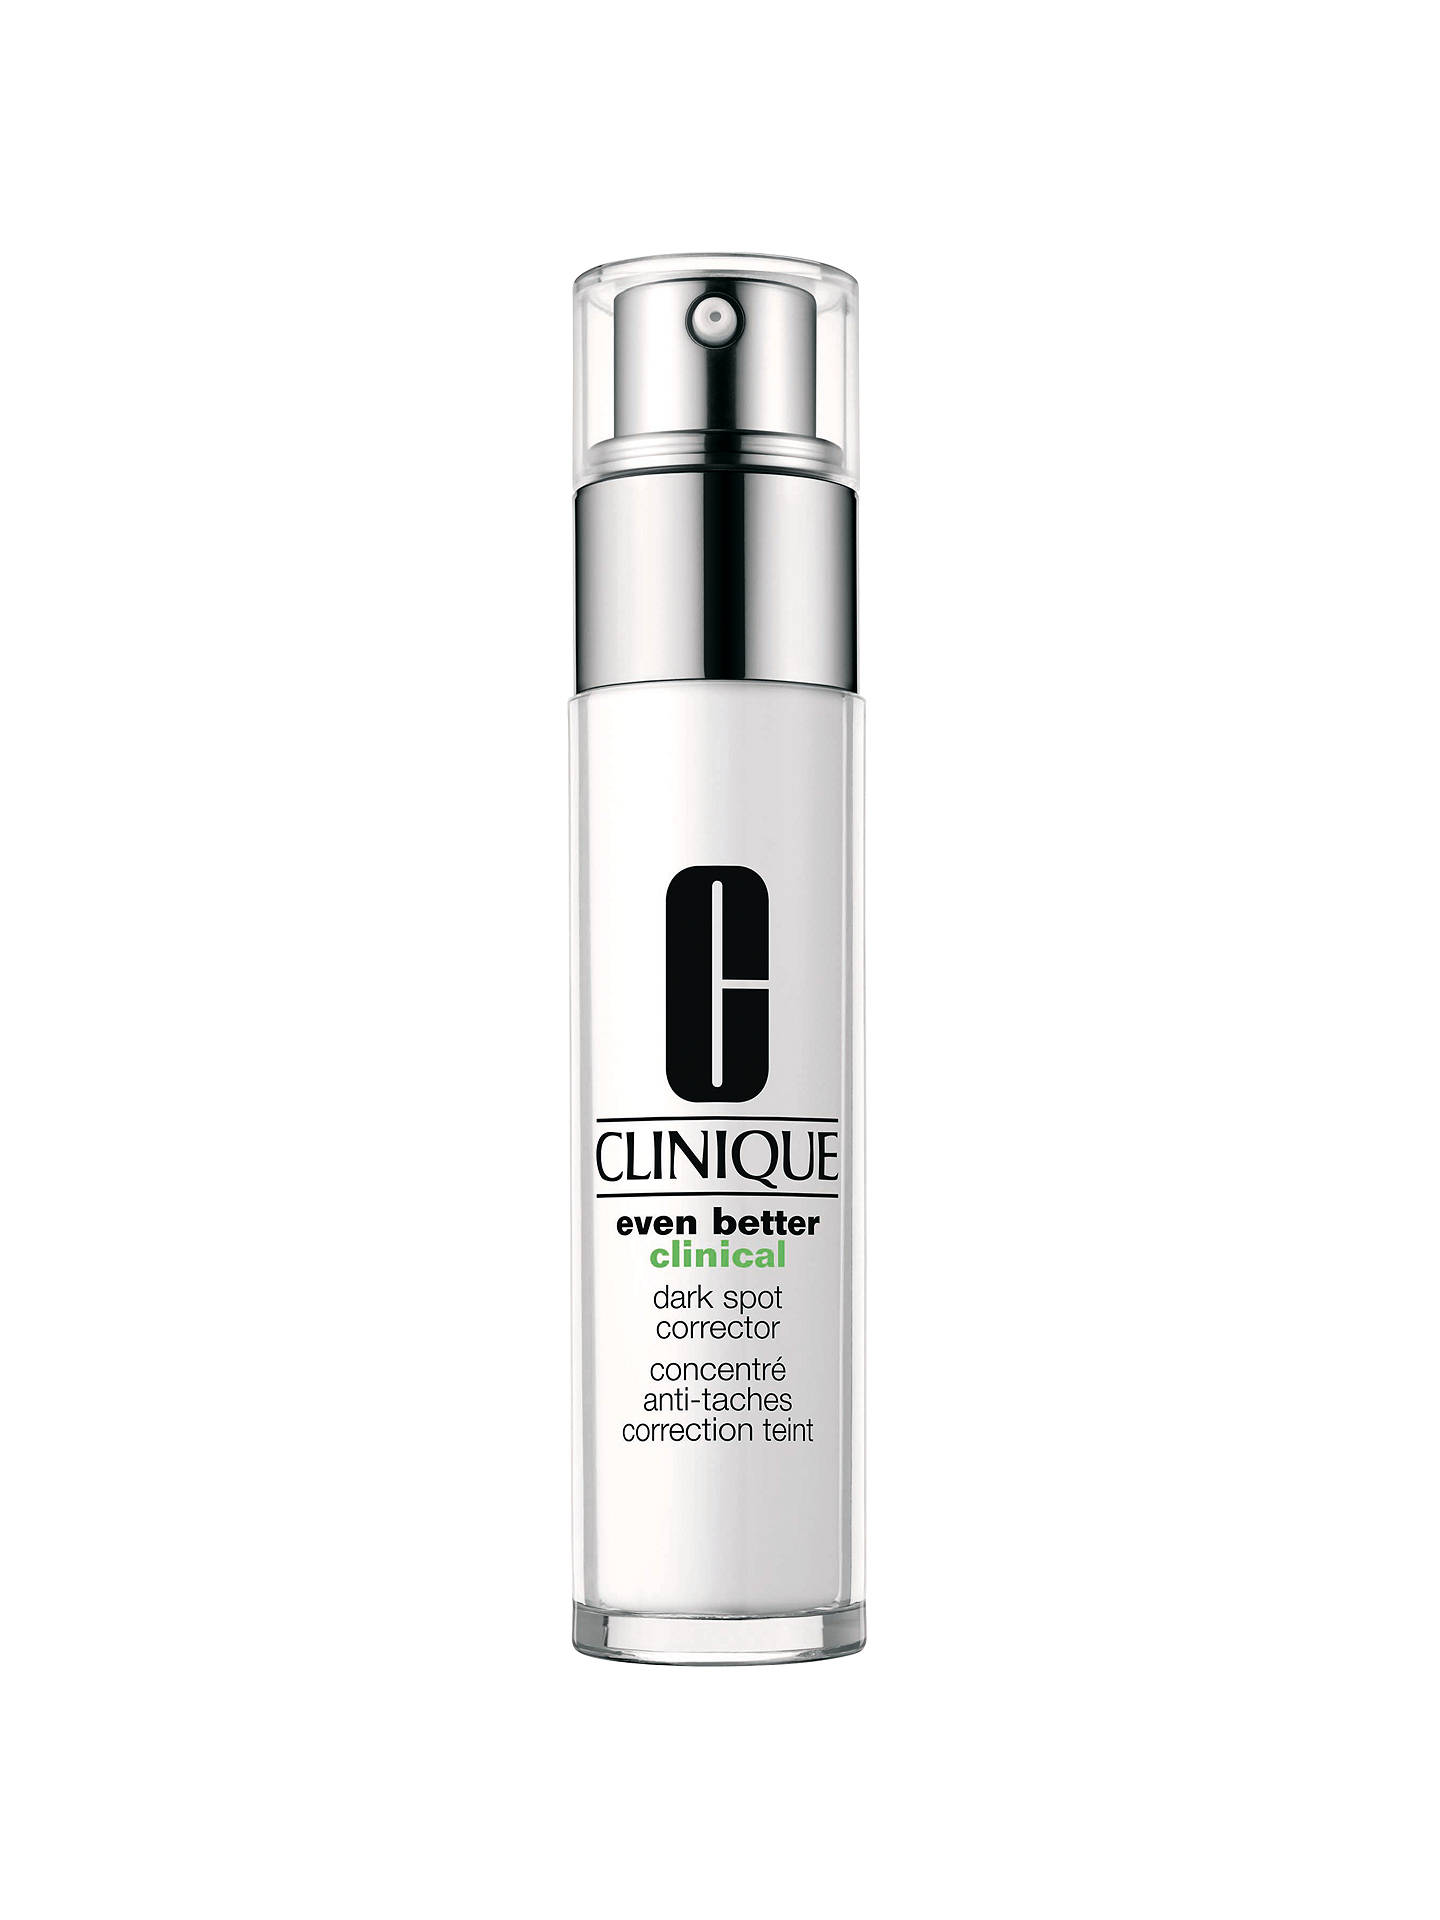 Buy Clinique Even Better Clinical Dark Spot Corrector, 100ml Online at johnlewis.com